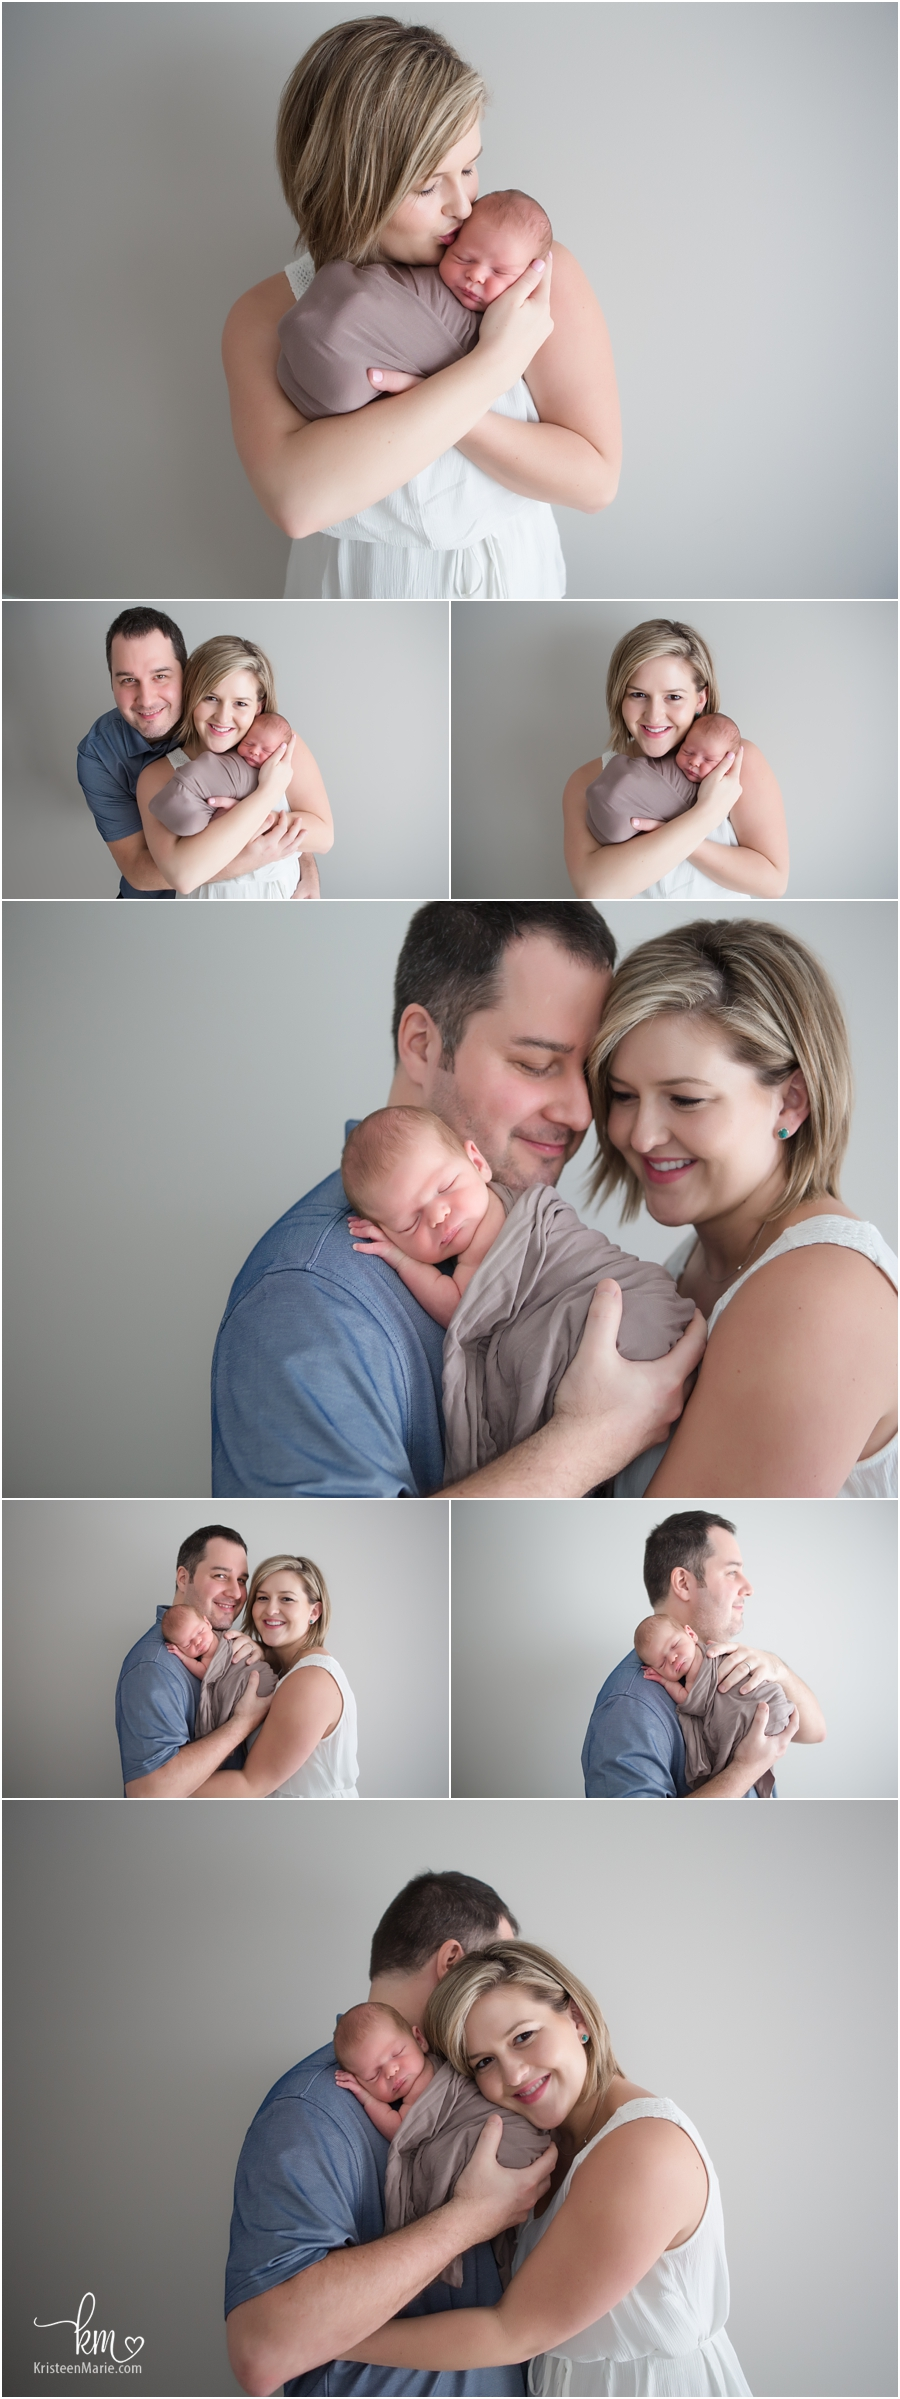 parents and newborn baby - family newborn photography poses in studio